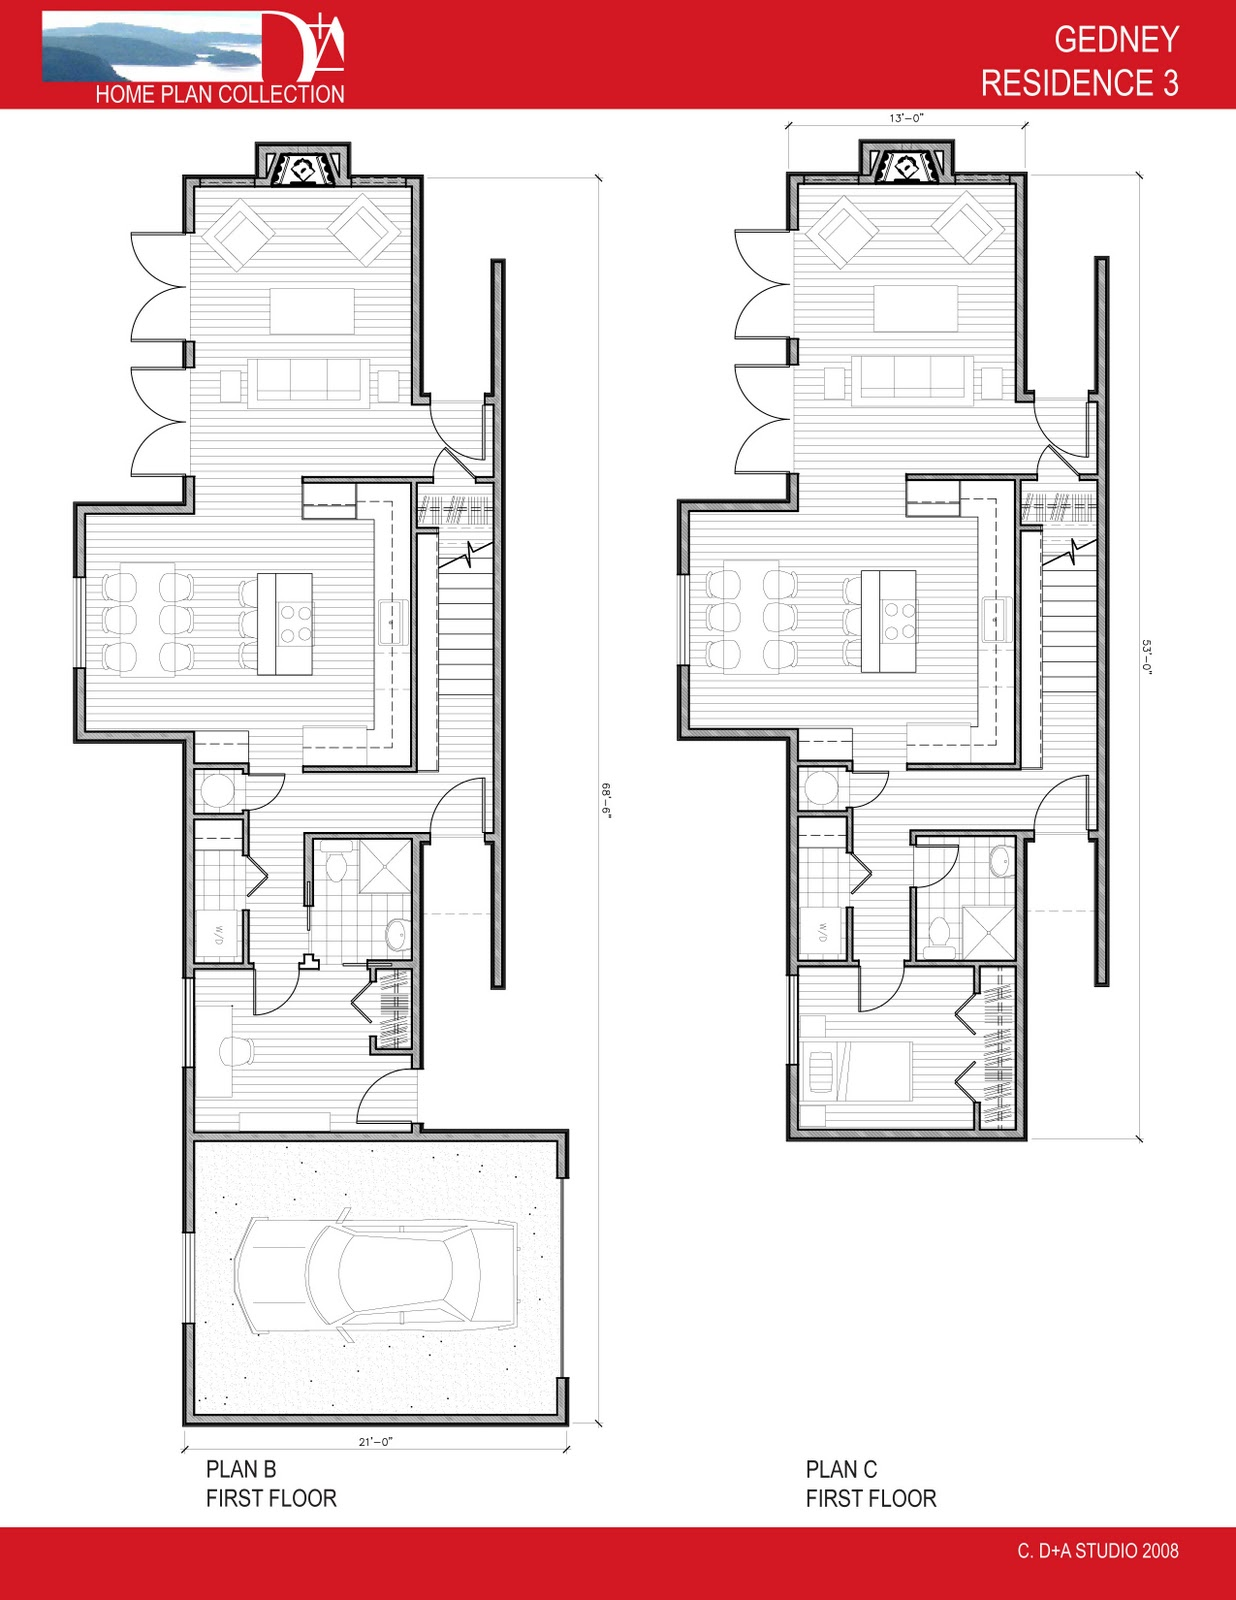 House plans under 1000 square feet 1000 sq ft ranch plans for Home plan 1000 sq feet